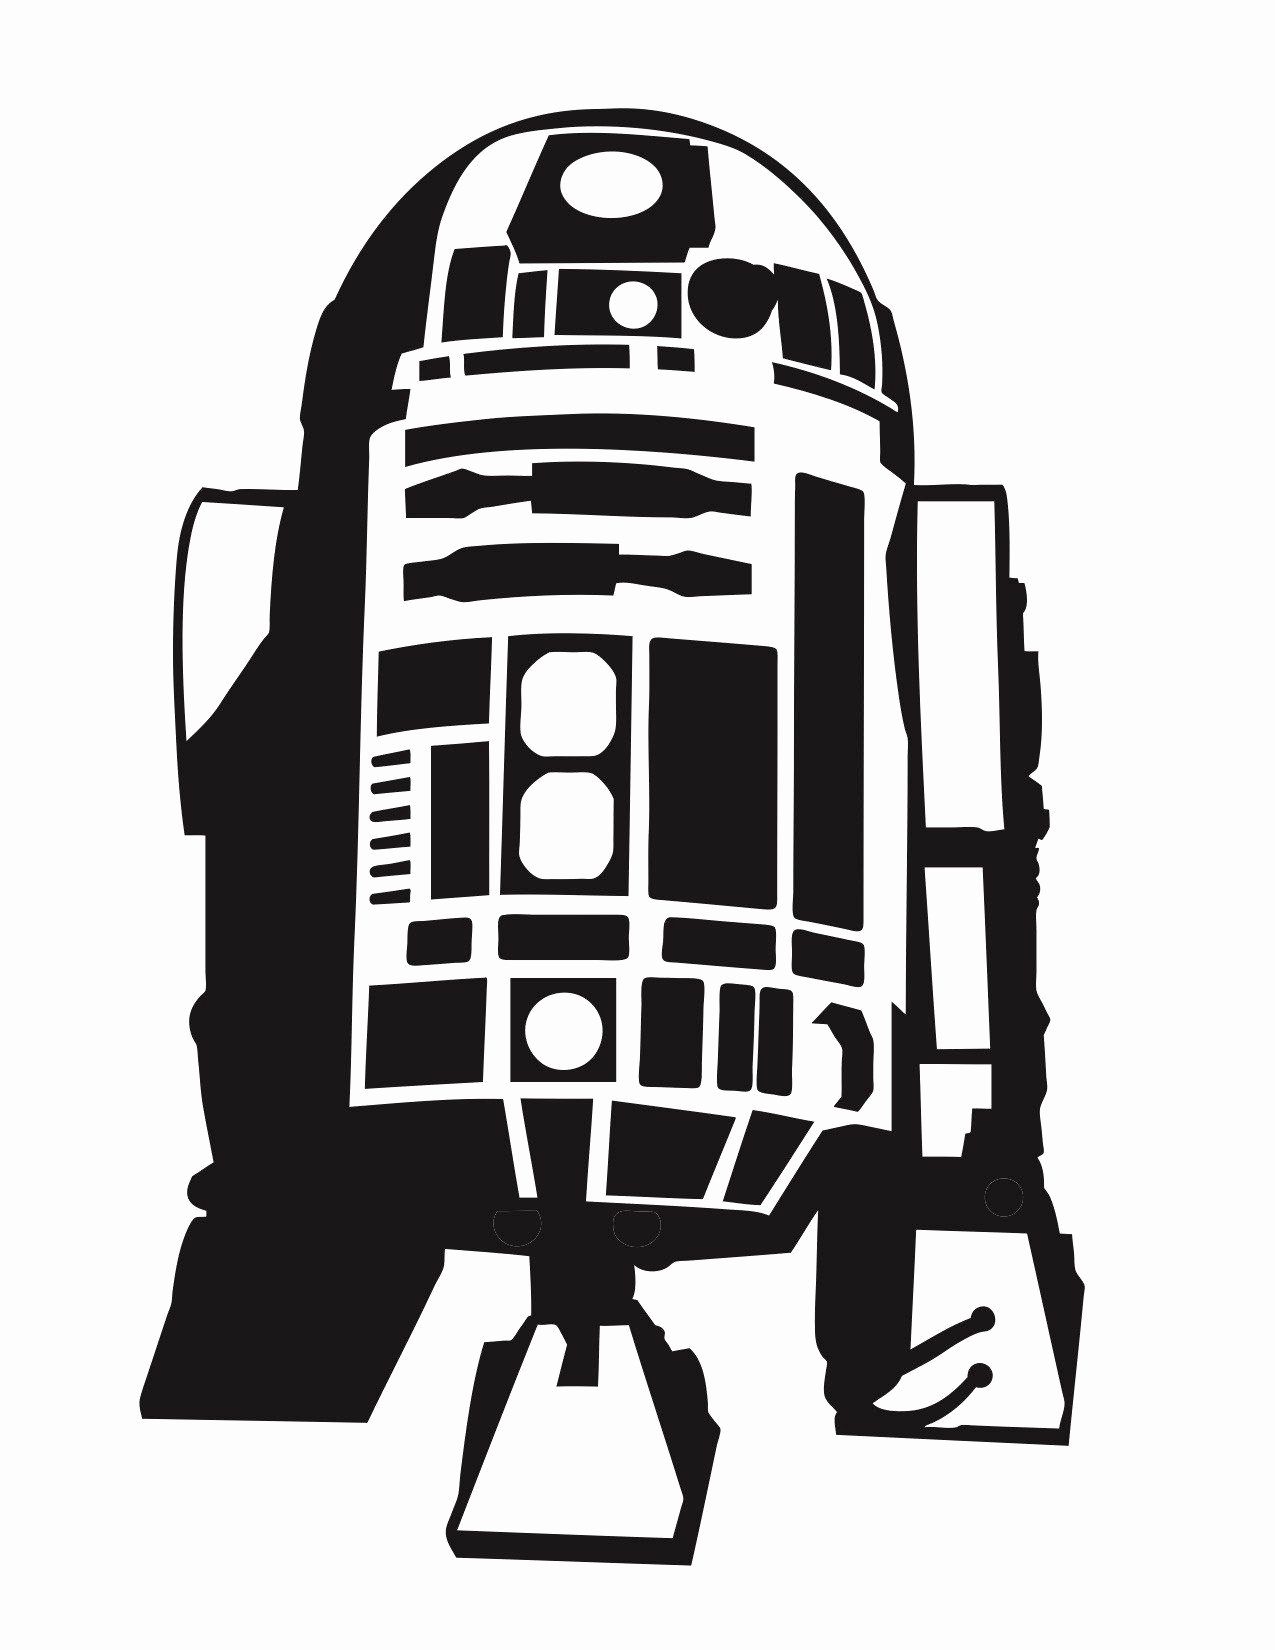 2 Inch Star Stencil Elegant R2d2 Silhouette Vector at Getdrawings